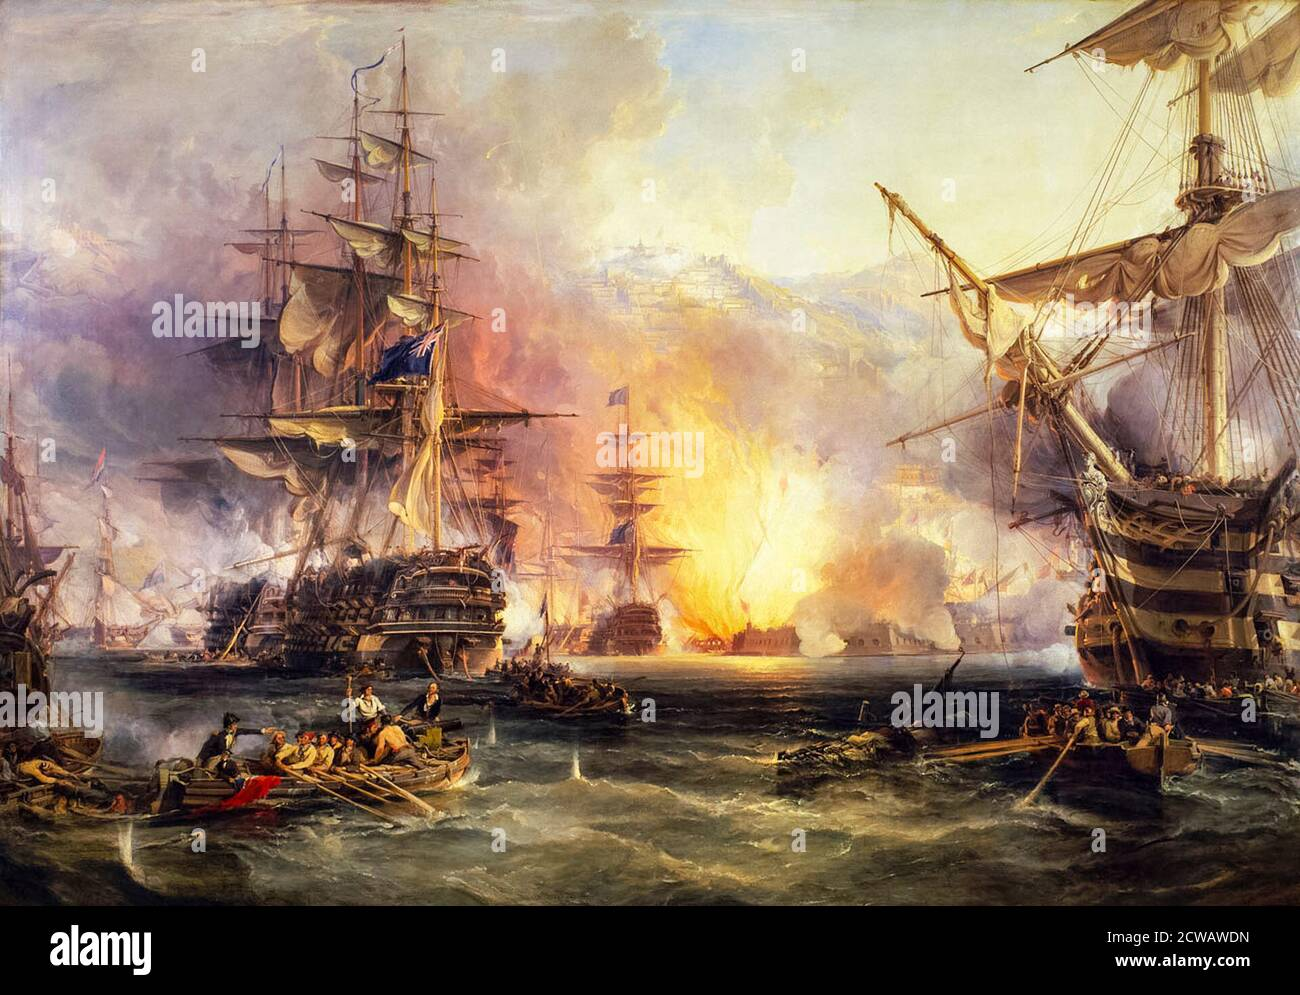 The Bombardment of Algiers, 27th August 1816, painting by George Chambers snr, 1836 Stock Photo